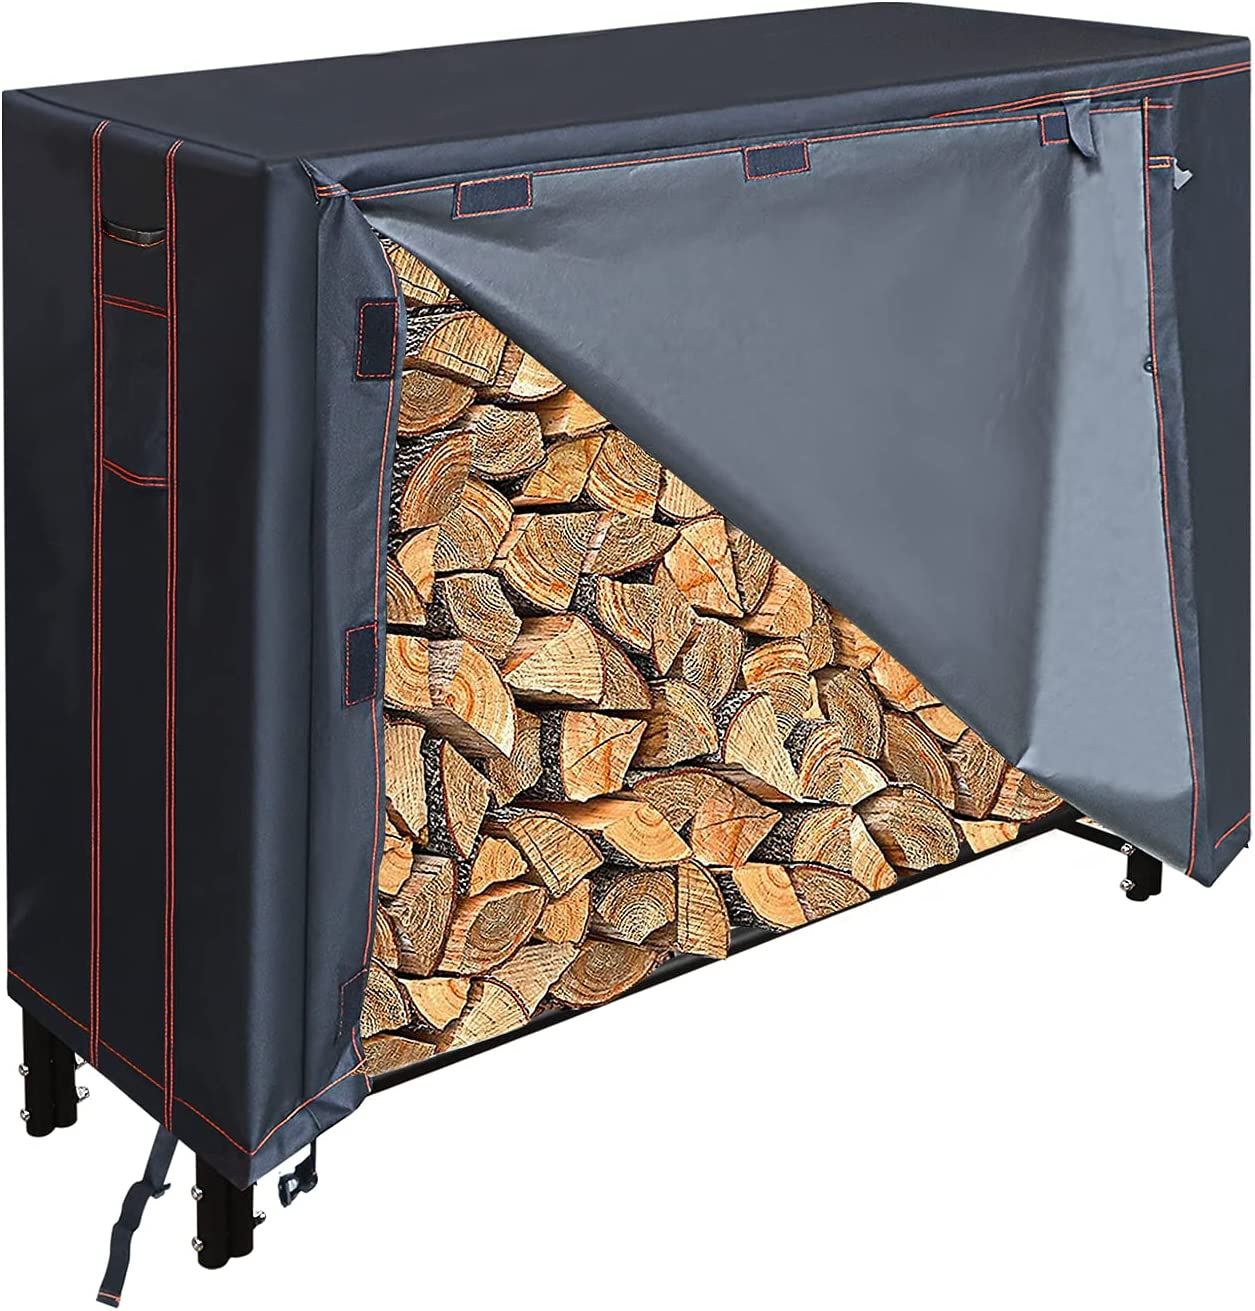 SnugNiture 4 It is very popular Feet Firewood Log Rack Heavy Manufacturer direct delivery Cover Dut Oxford 600D